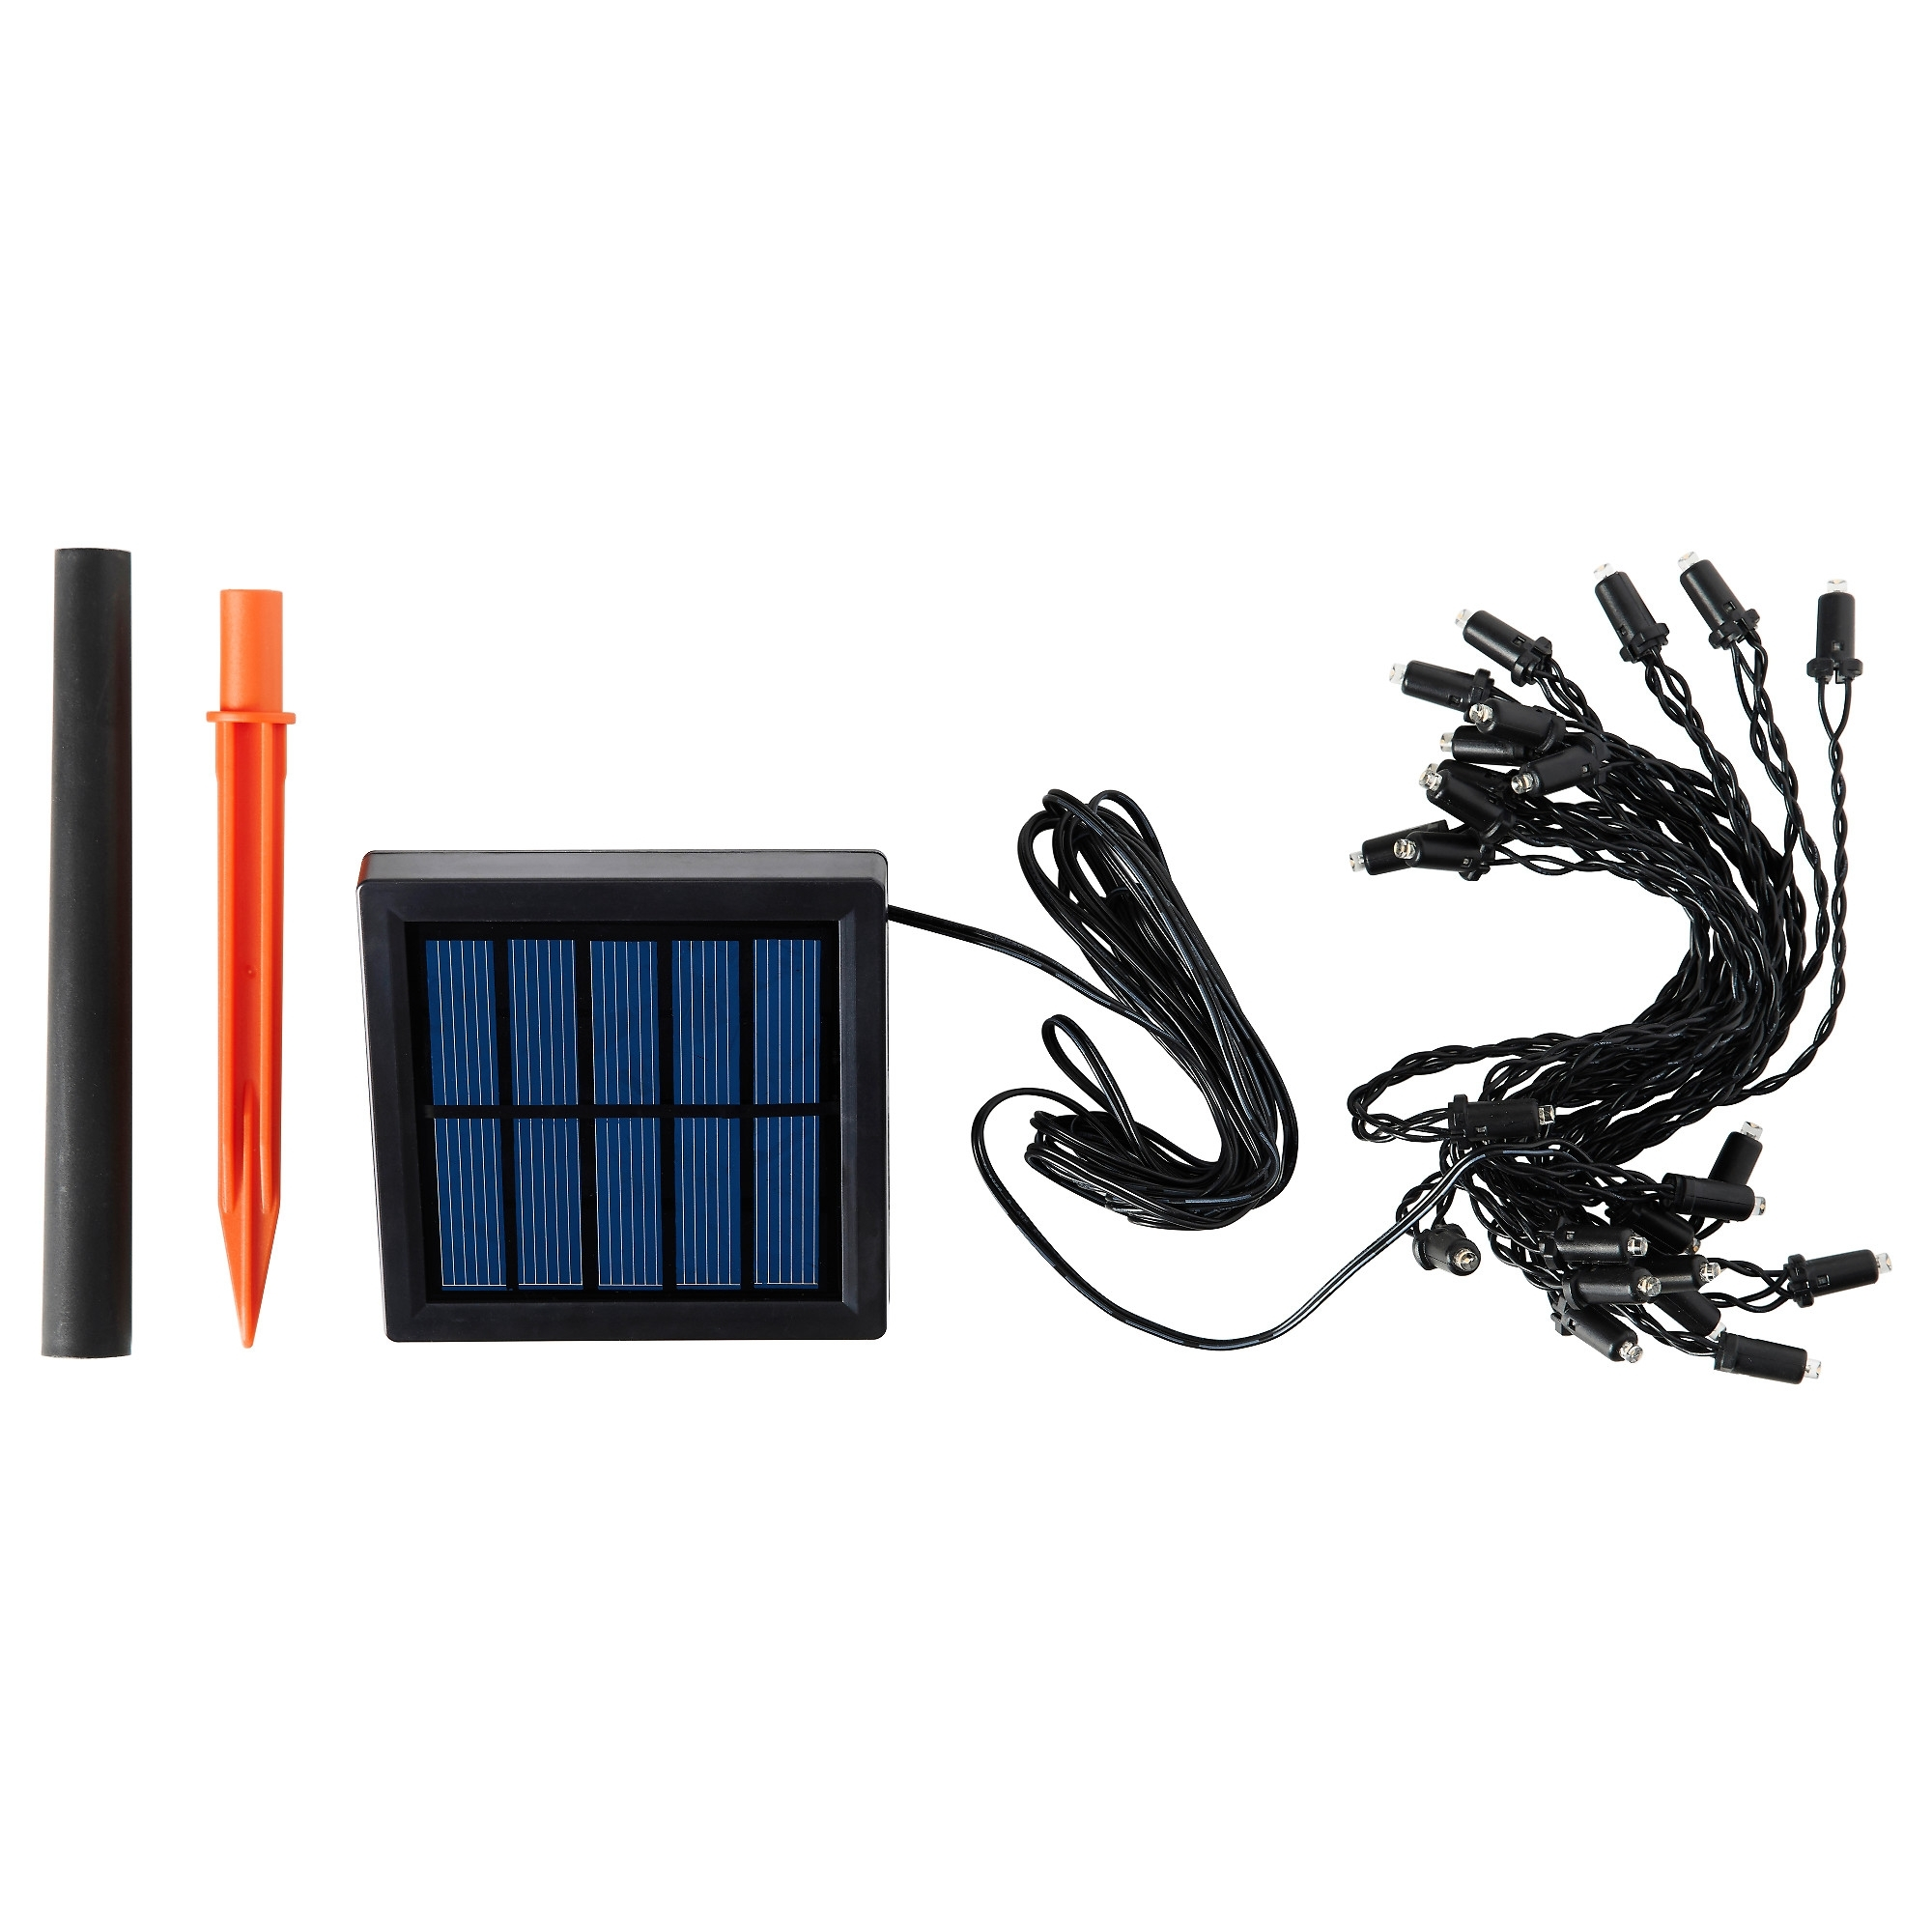 Solarvet Led String Light With 24 Lights – Ikea With Ikea Battery Operated Outdoor Lights (View 13 of 15)